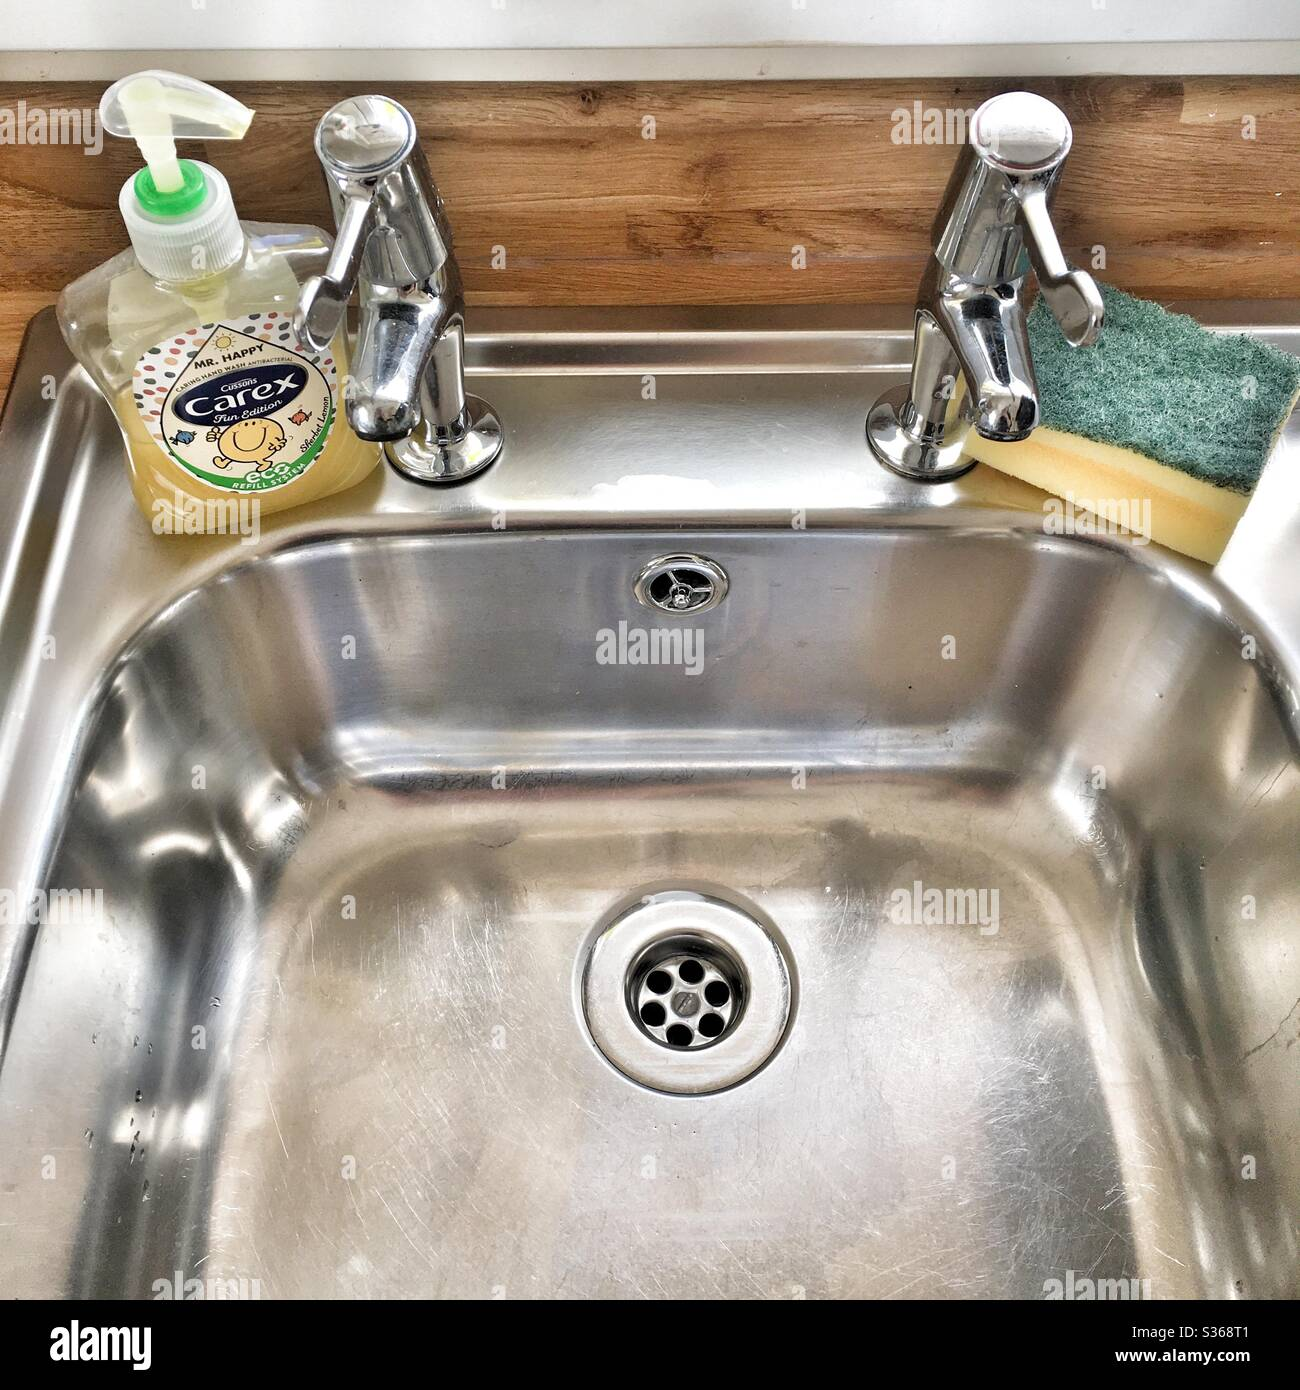 https www alamy com a photograph of a spotlessly clean stainless steel sink and taps with a bottle of carex hand soap and a sponge cleaning clean home ocd washing hands concept image311769249 html